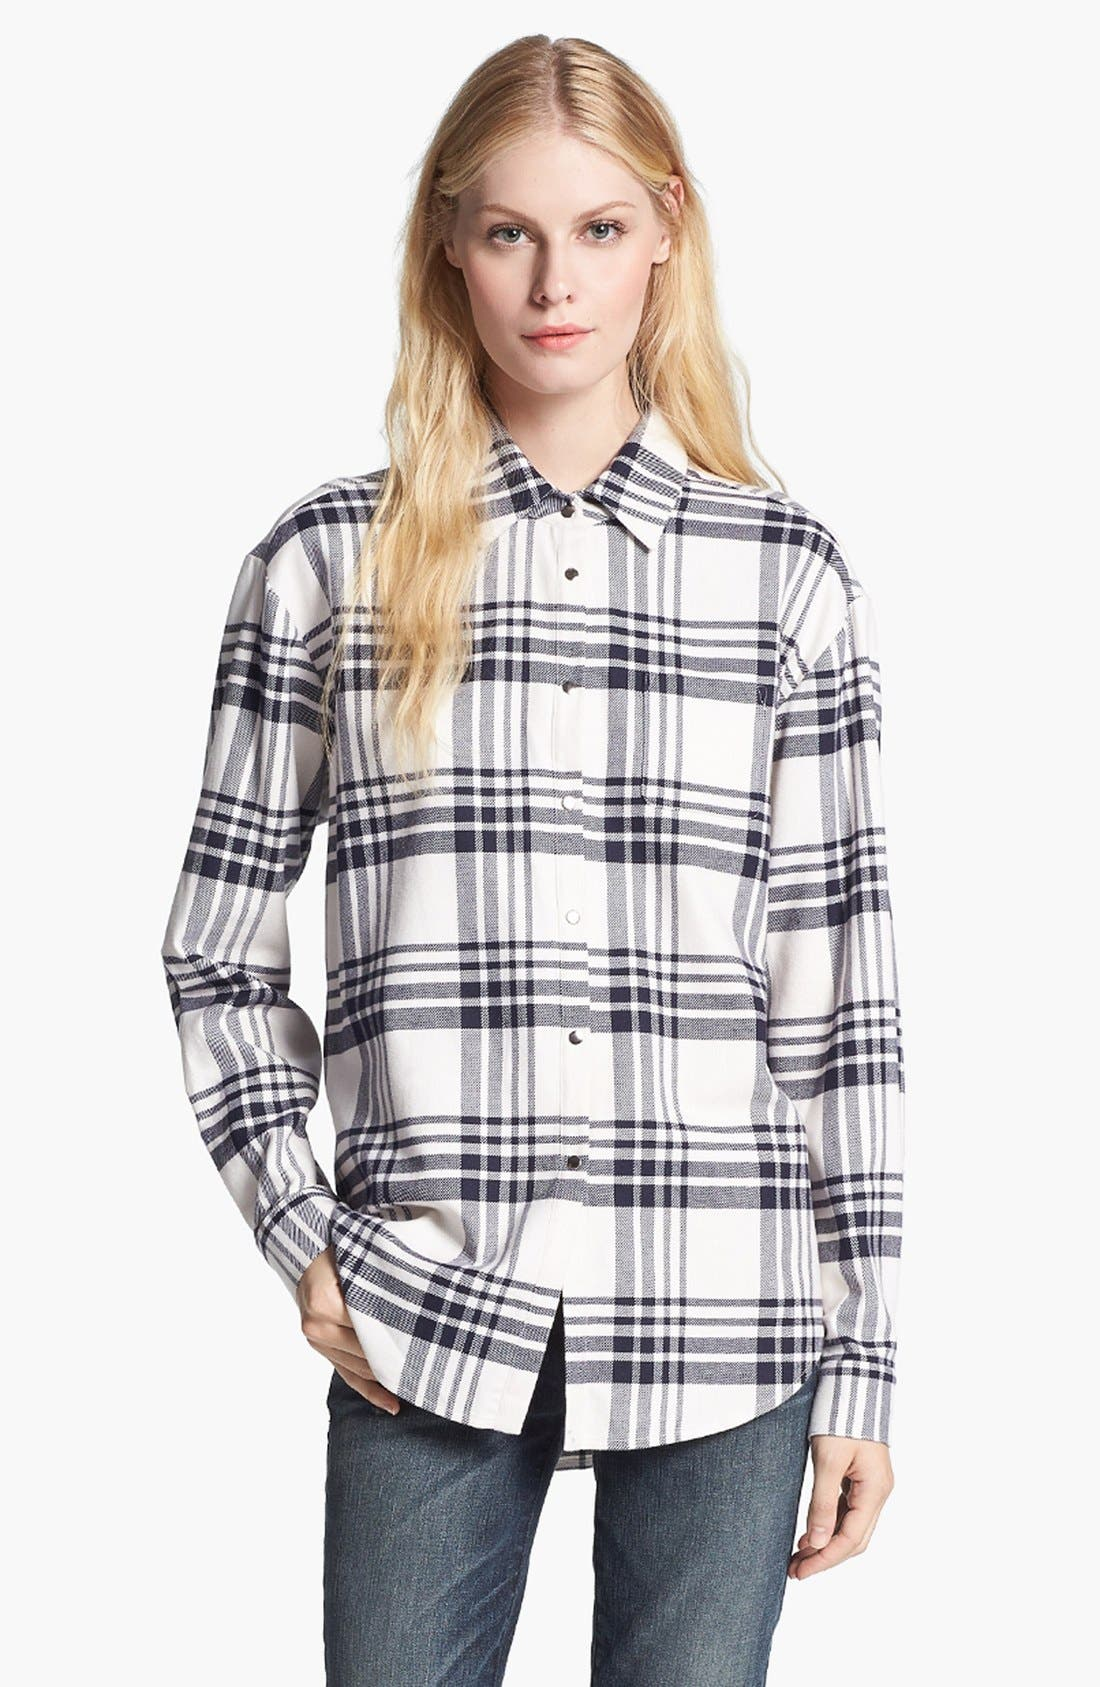 Alternate Image 1 Selected - Elizabeth and James 'Pam' Plaid Flannel Shirt